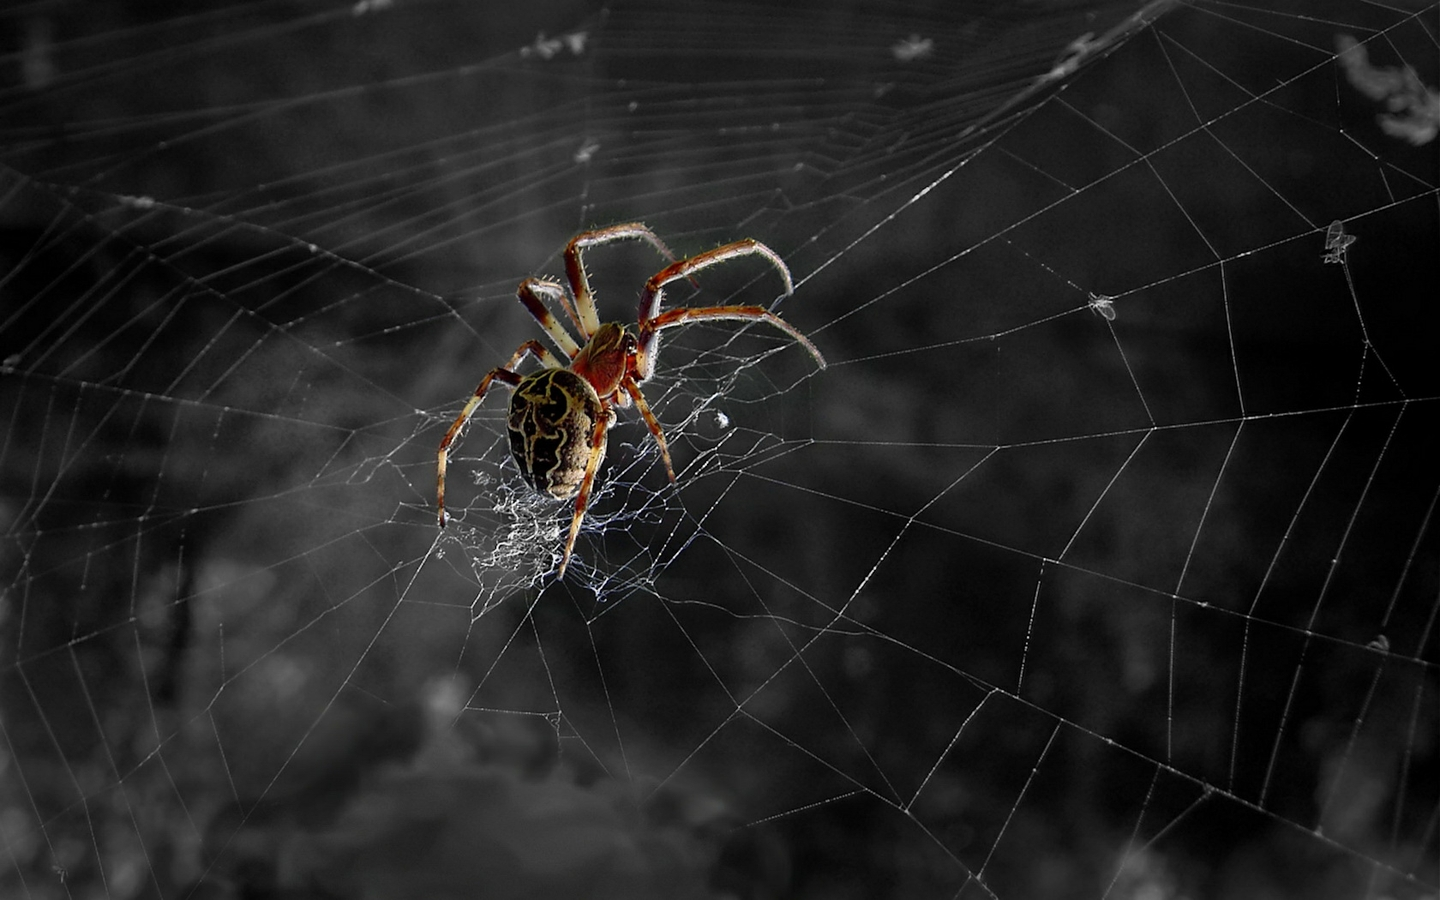 Spider Web Wallpaper for PC Full HD Pictures 1440x900